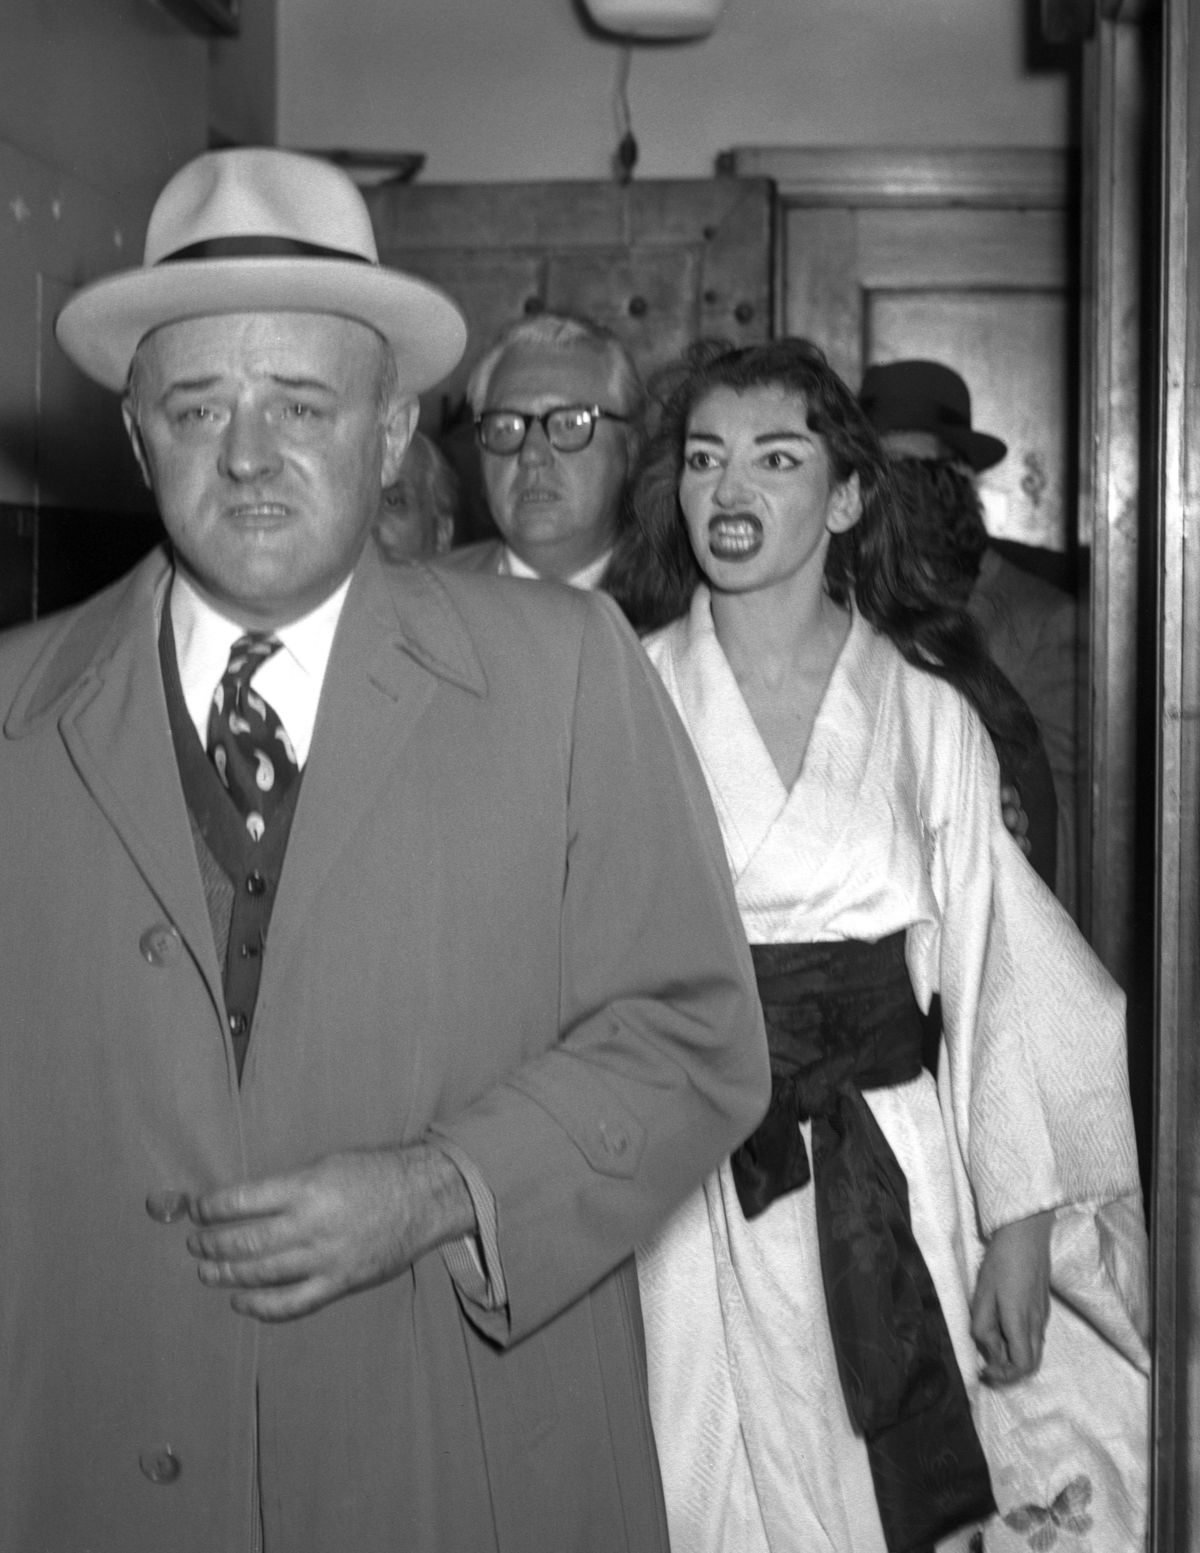 """Opera diva Maria Callas hisses at federal marshal Stanley Pringle, who served a summons to her following her performance in """"Madame Butterfly"""" at the Chicago's Civic Opera House in 1955. Callas was being sued by a management firm."""